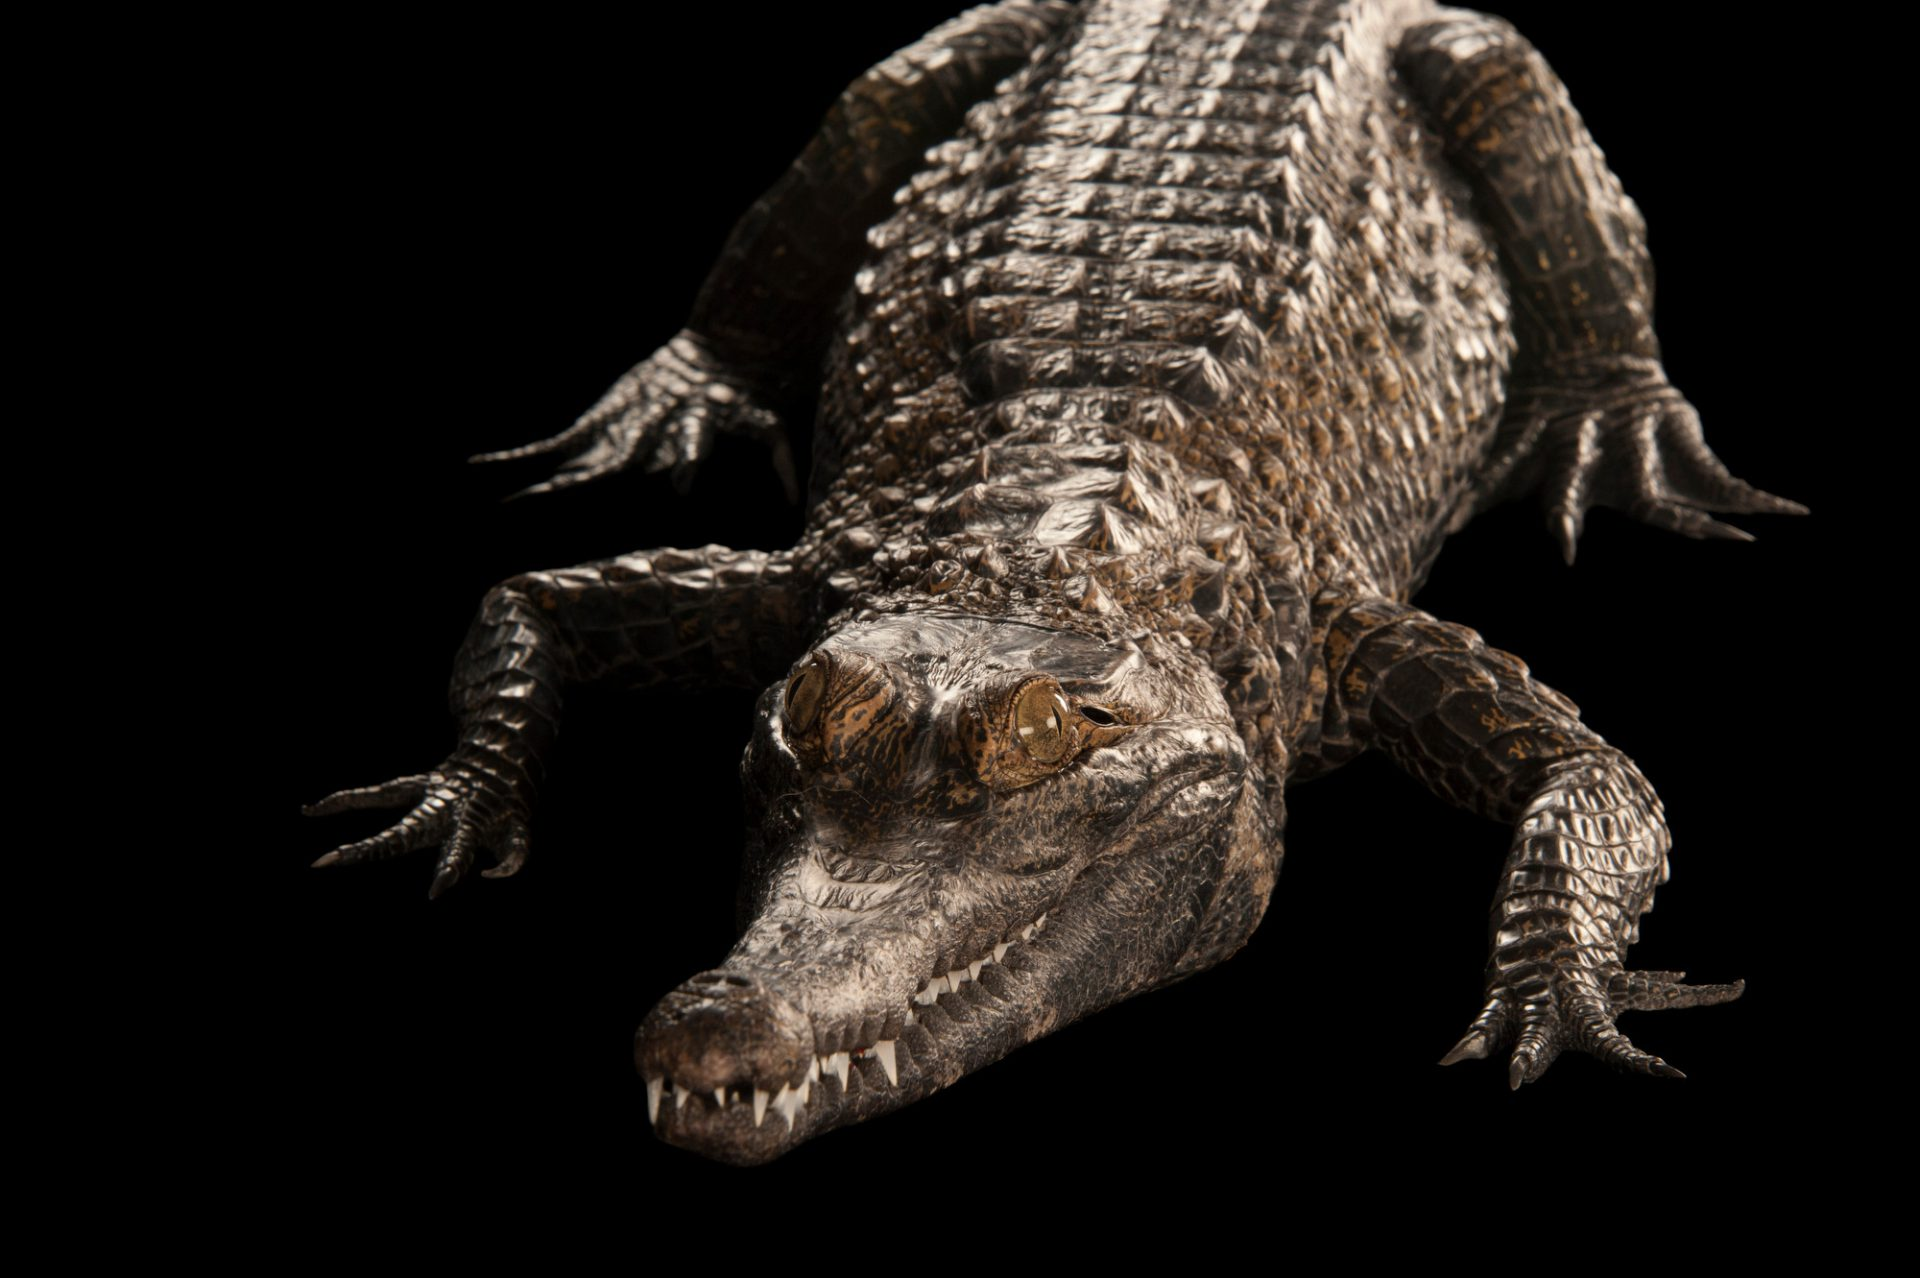 A federally endangered African slender snouted crocodile (Mecistops cataphractus).